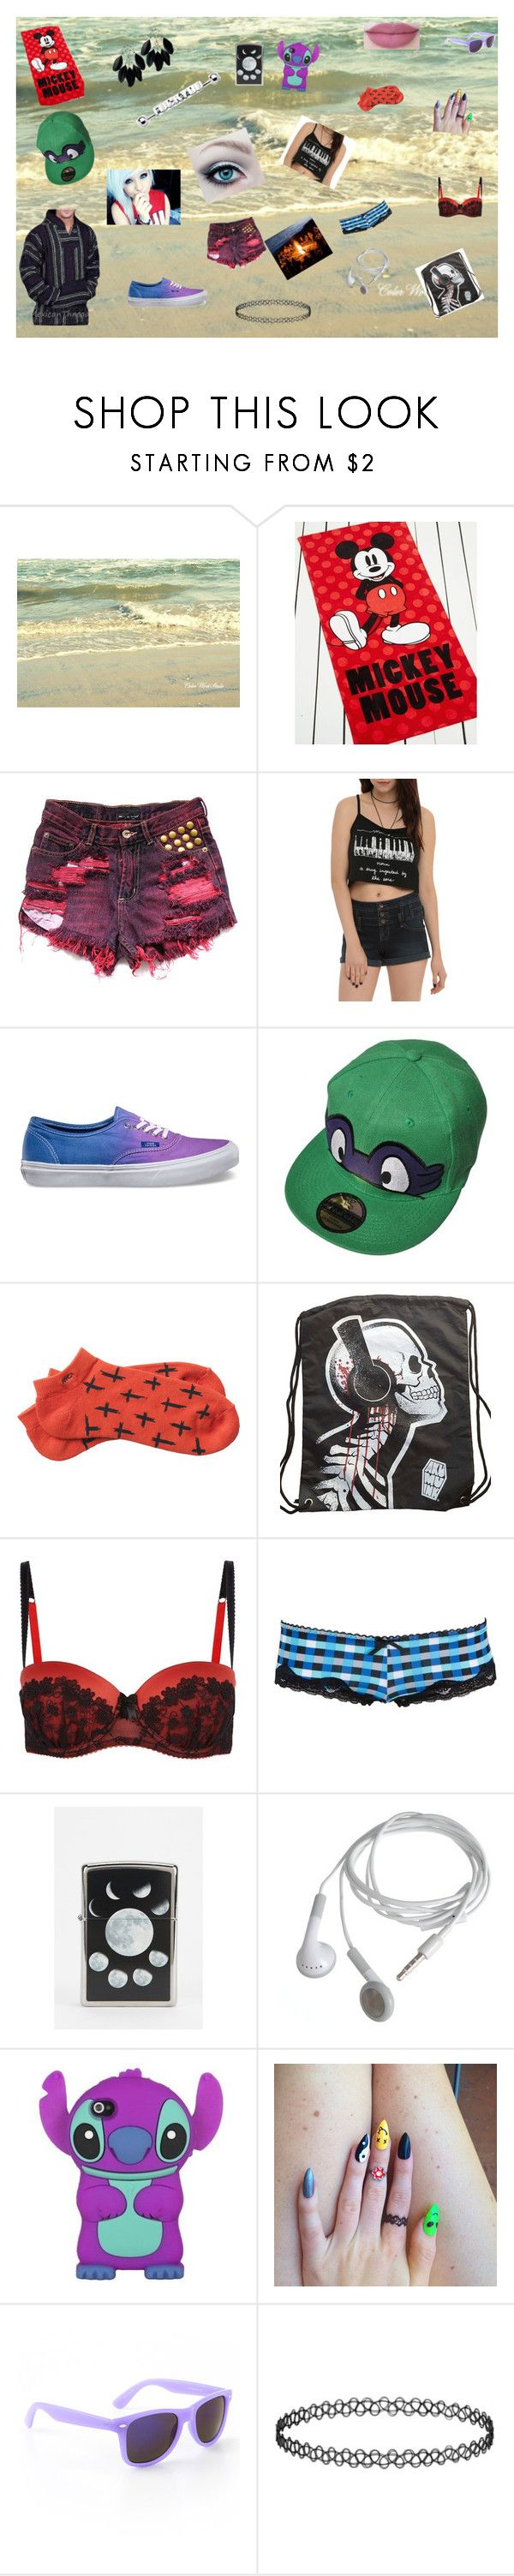 Summer Bonfire! by xsafehavenx on Polyvore featuring Hot Topic, Charlotte Russe, RVCA, Vans, Topshop, Aéropostale, WALL, Disney, Zippo and Killstar